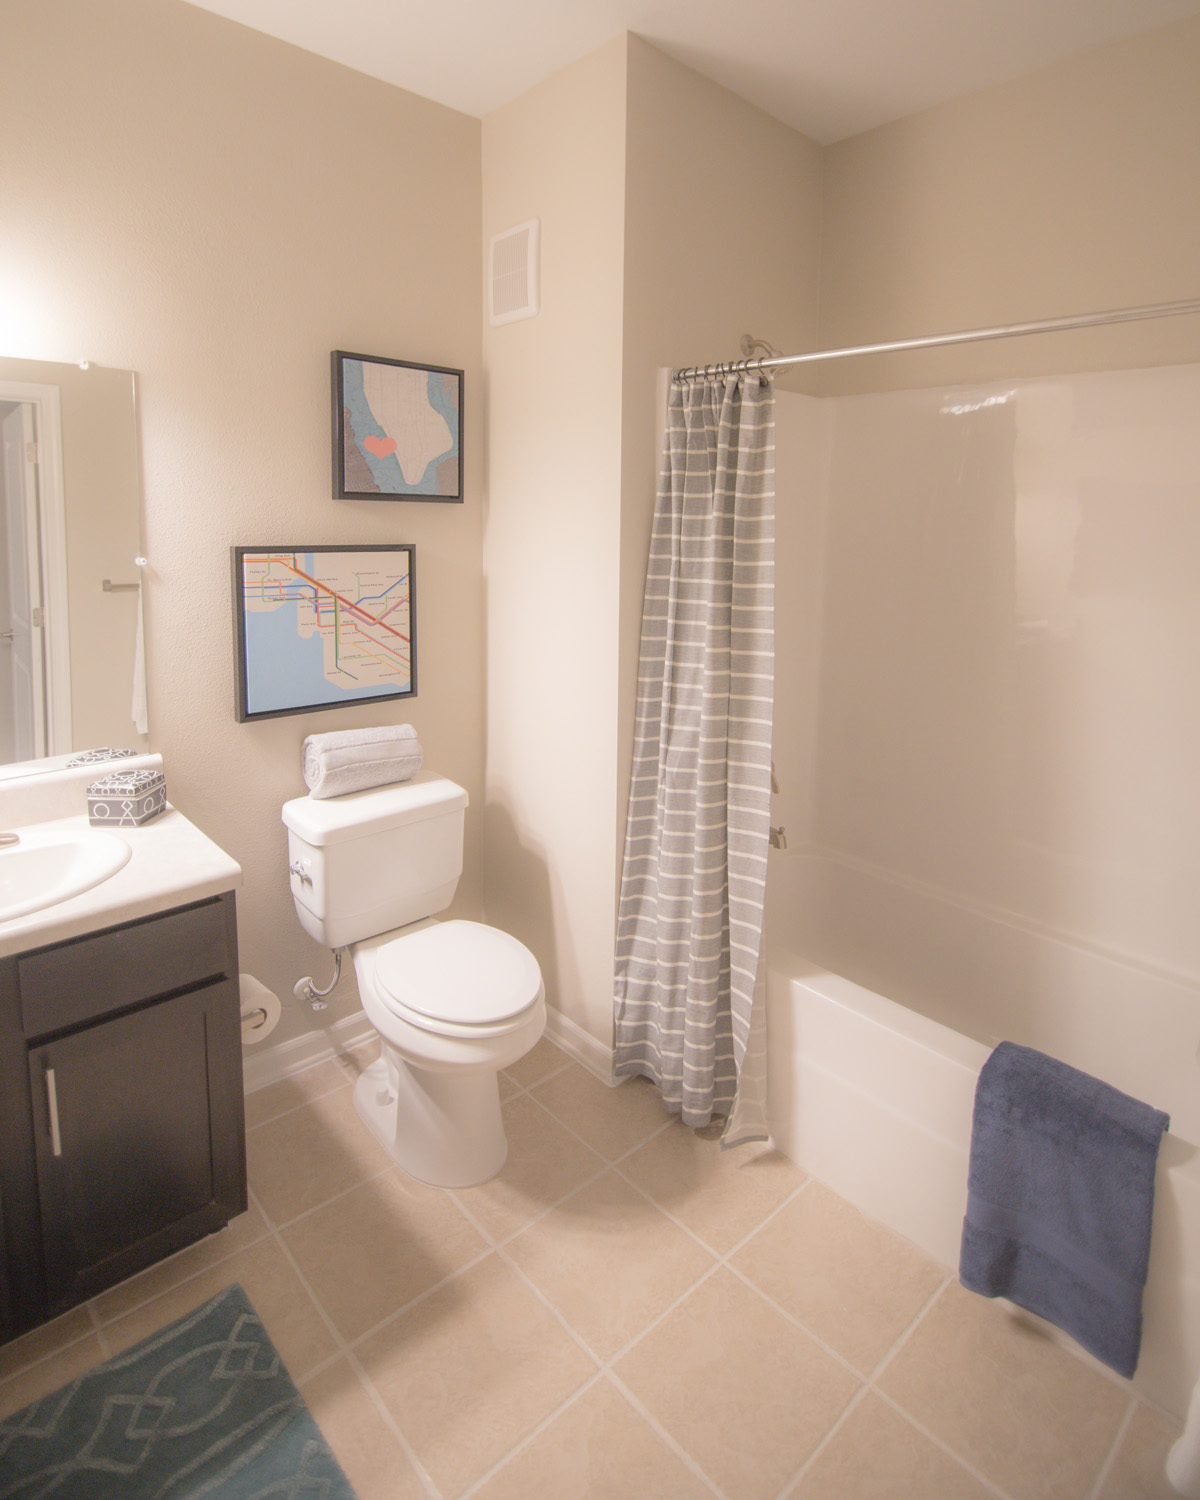 Bathroom at Goodnight commons with tub shower, tile flooring, and dark brown vanity